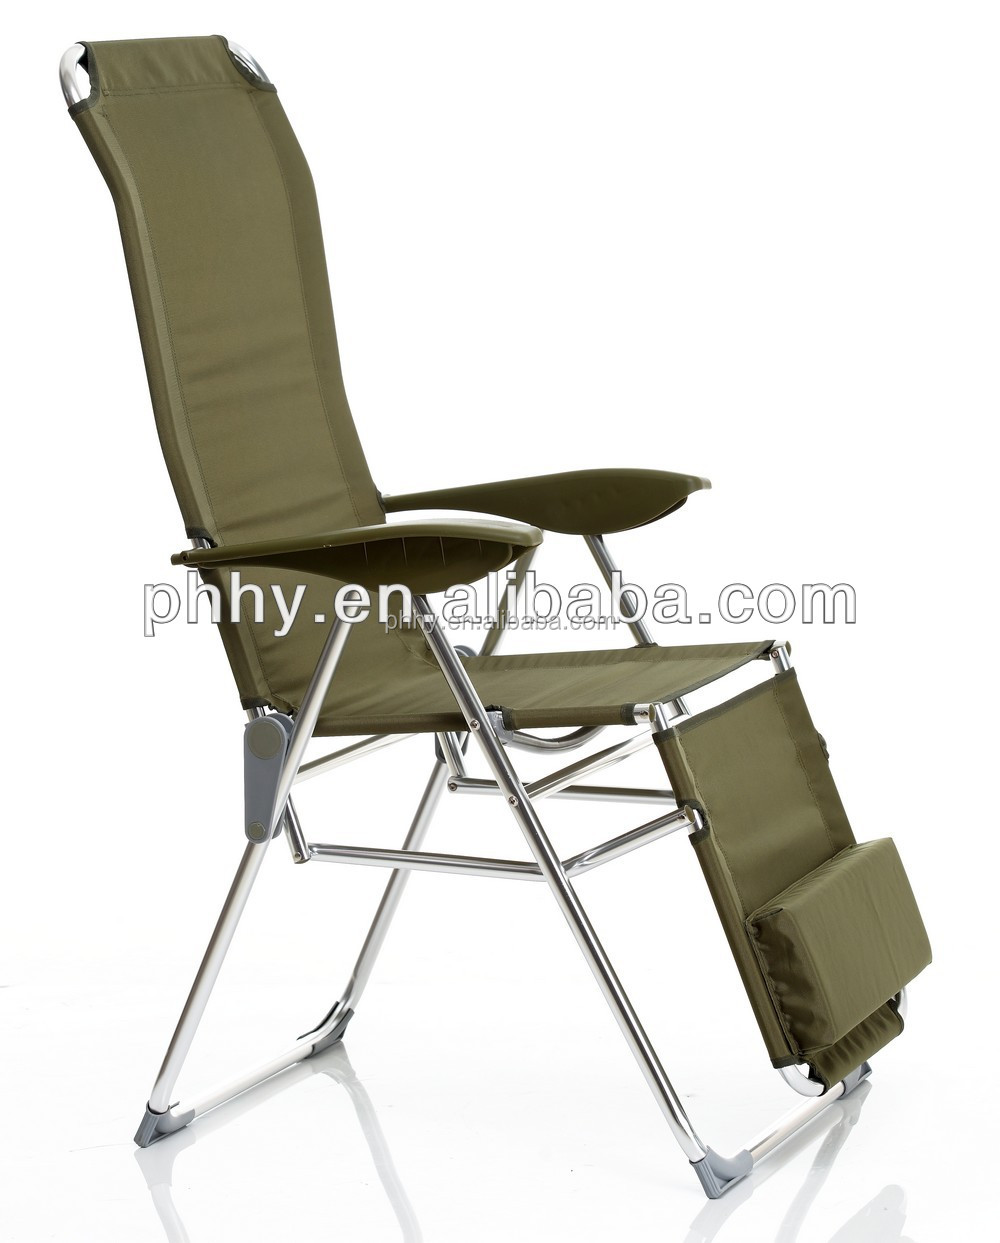 Folding Chair Parts Chairs Seating